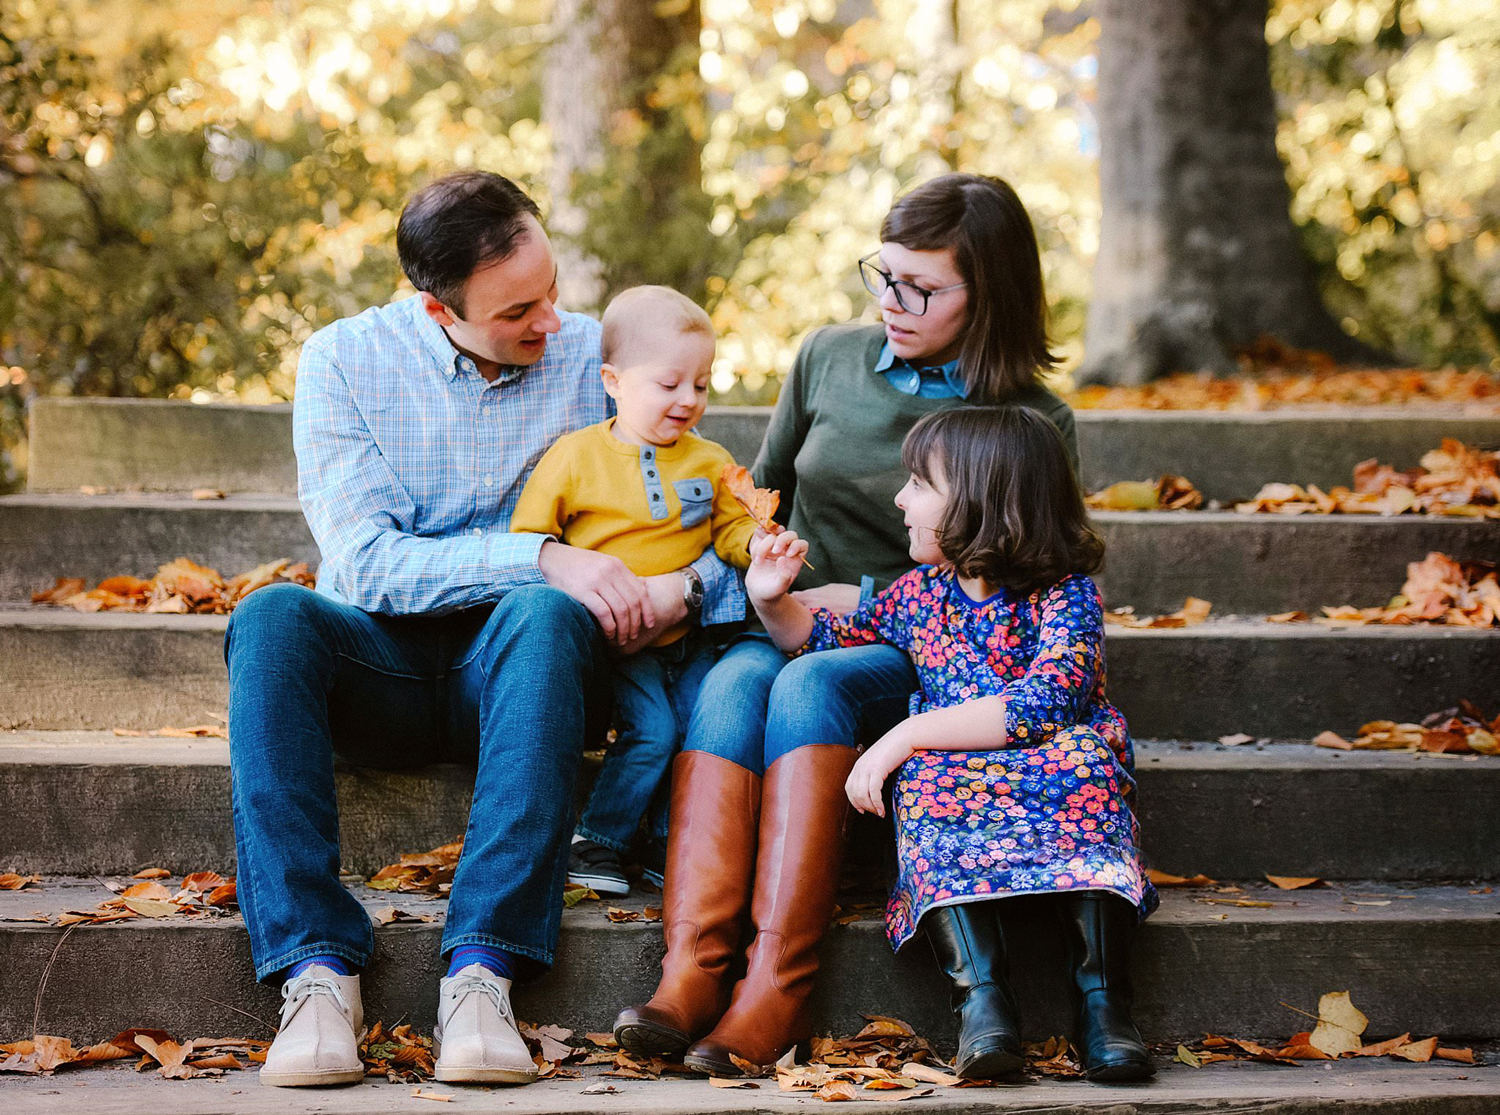 sweet-family-moment-at-a-fall-photo-session-william-and-mary-norfolk-williamsburg-photographer-melissa-bliss-photography.jpg